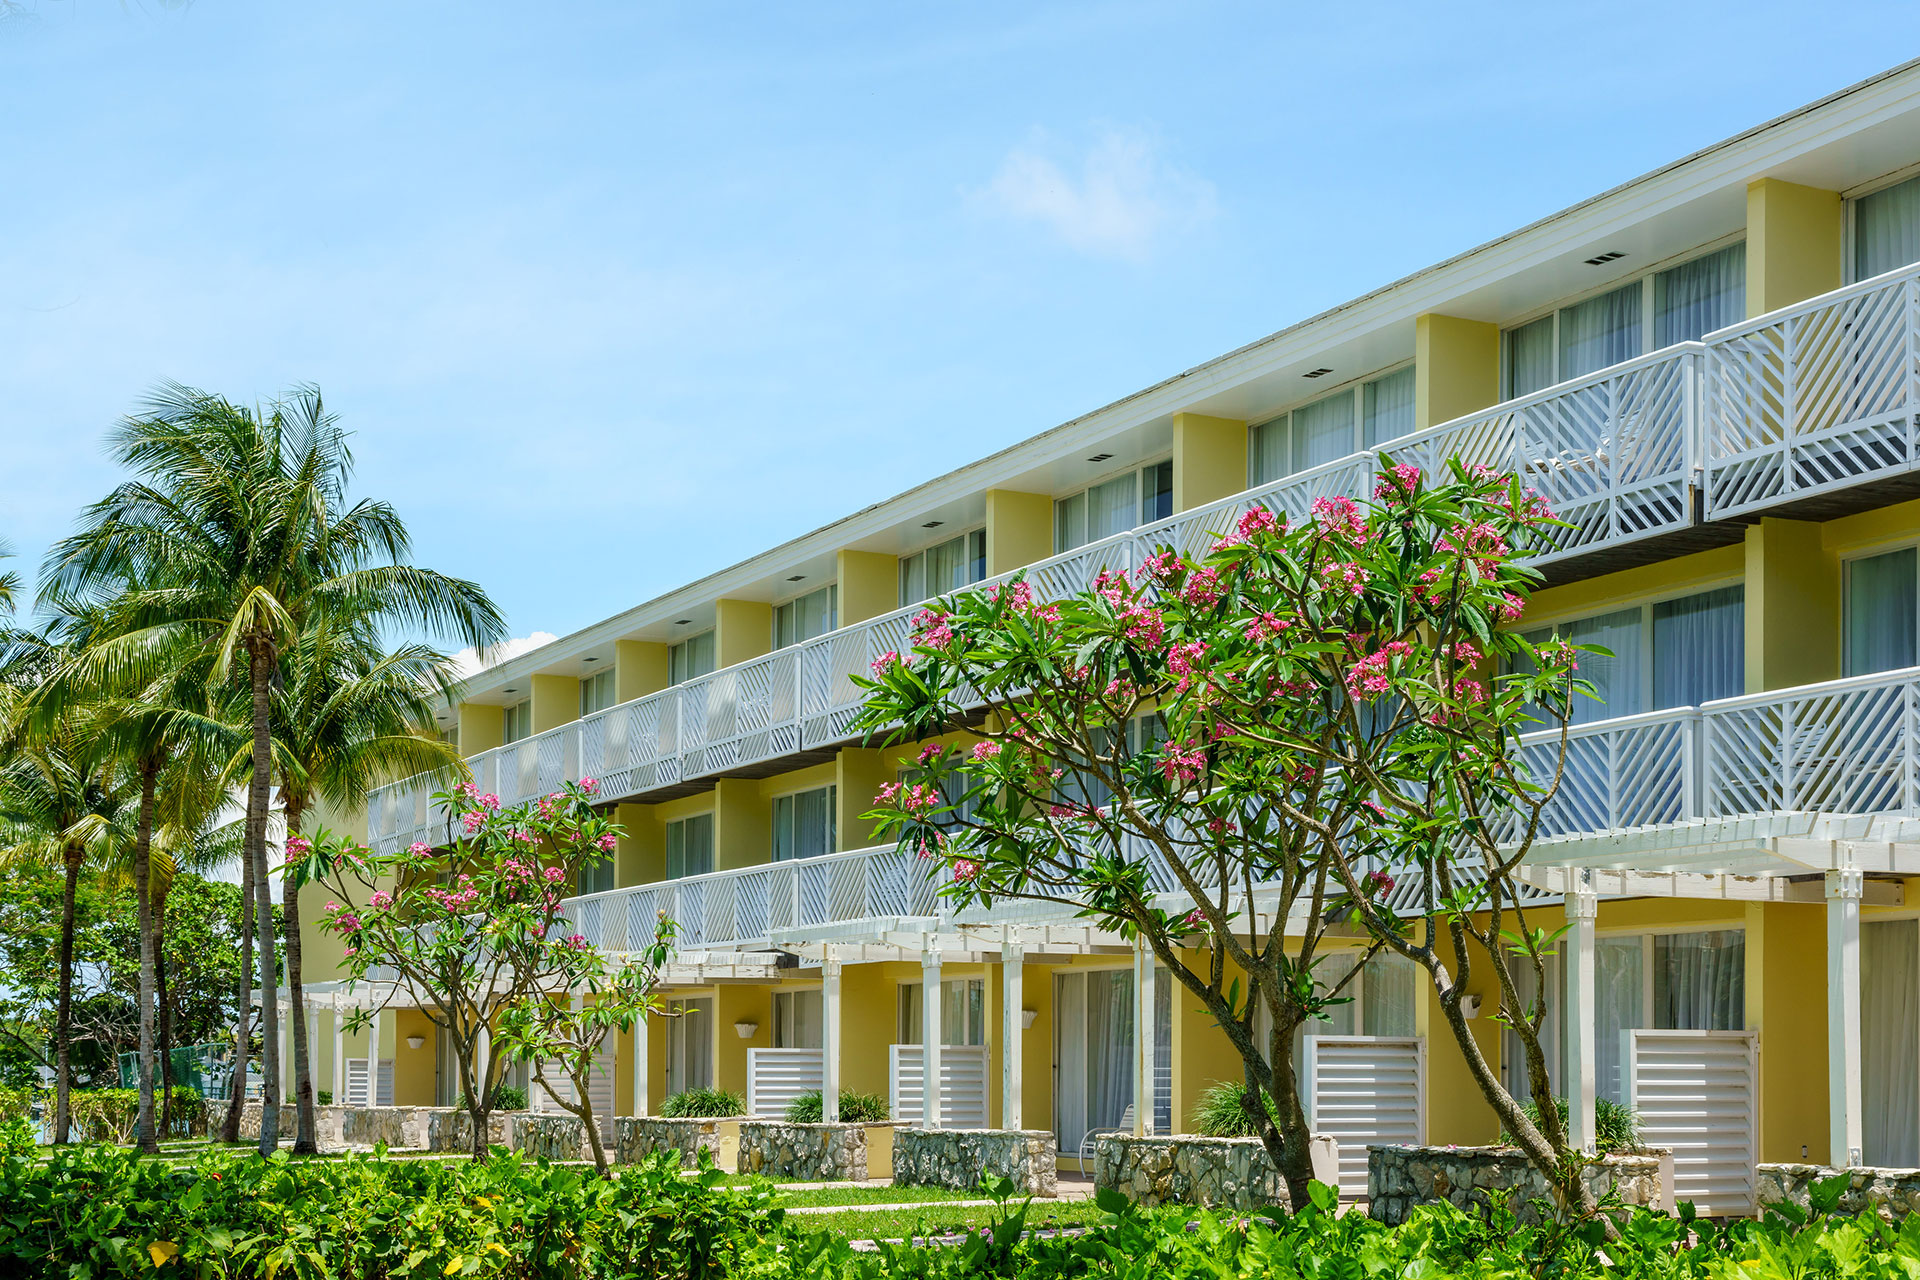 Lighthouse Pointe at Grand Lucayan in the Bahamas